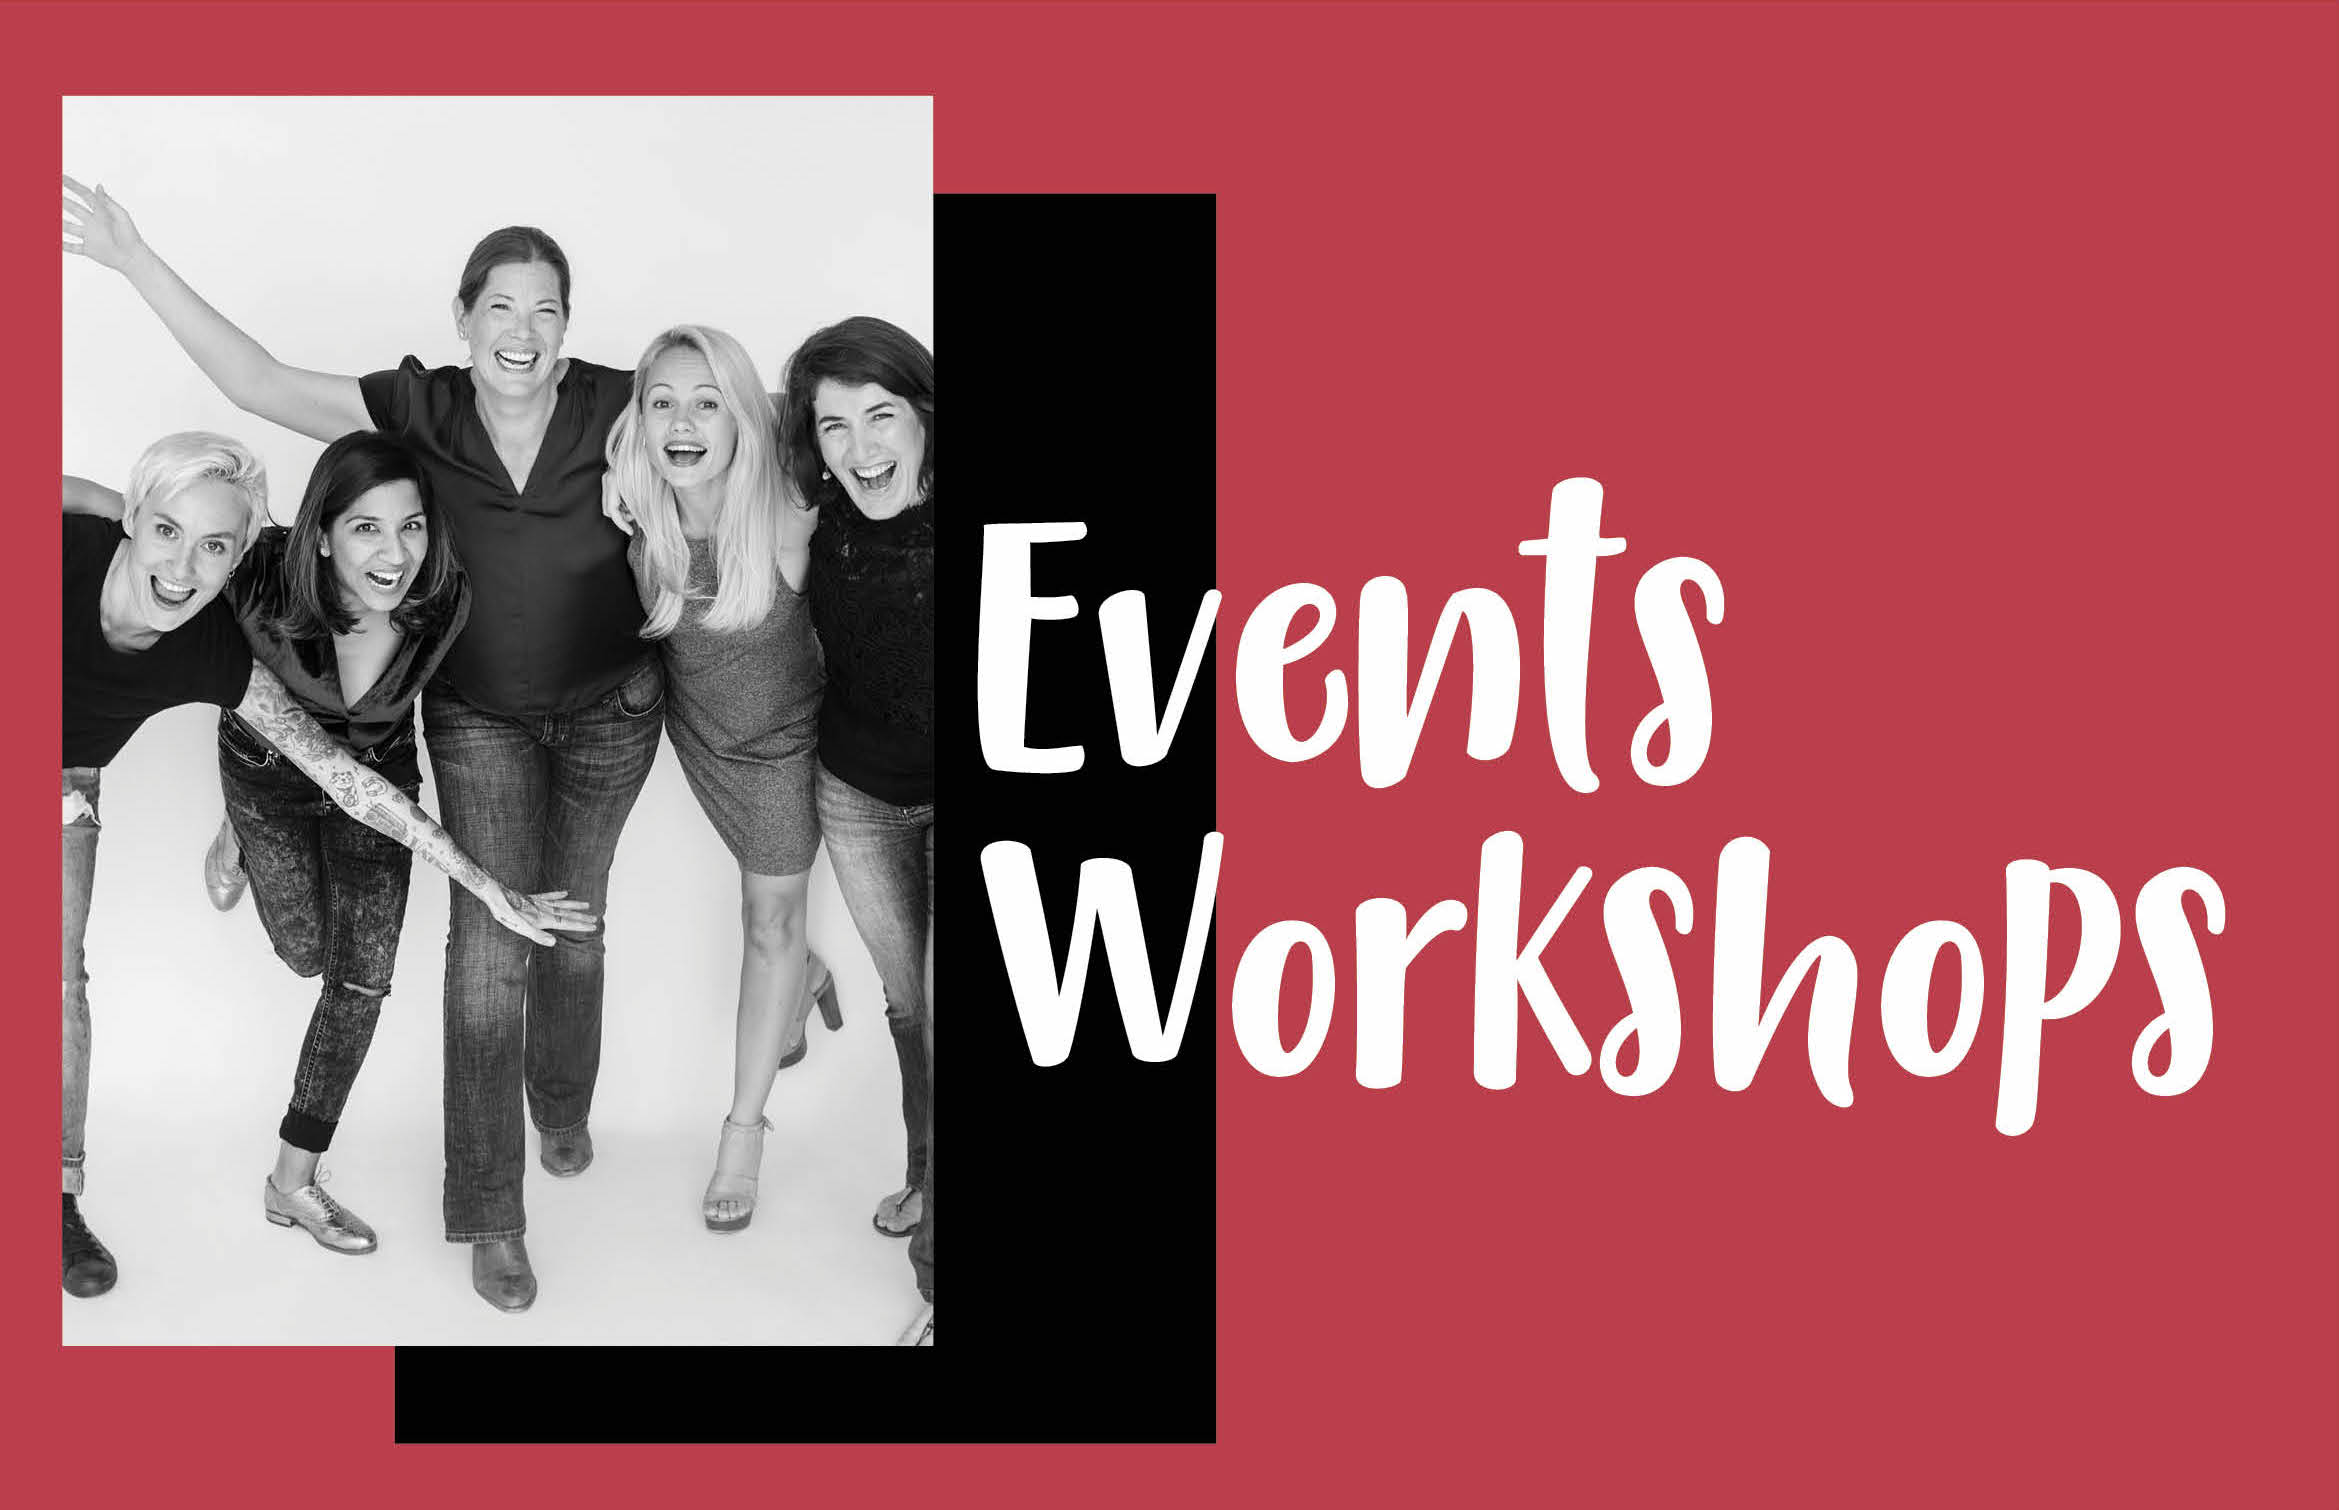 Sharon-Fennell-Services-Events-Workshops-Groups